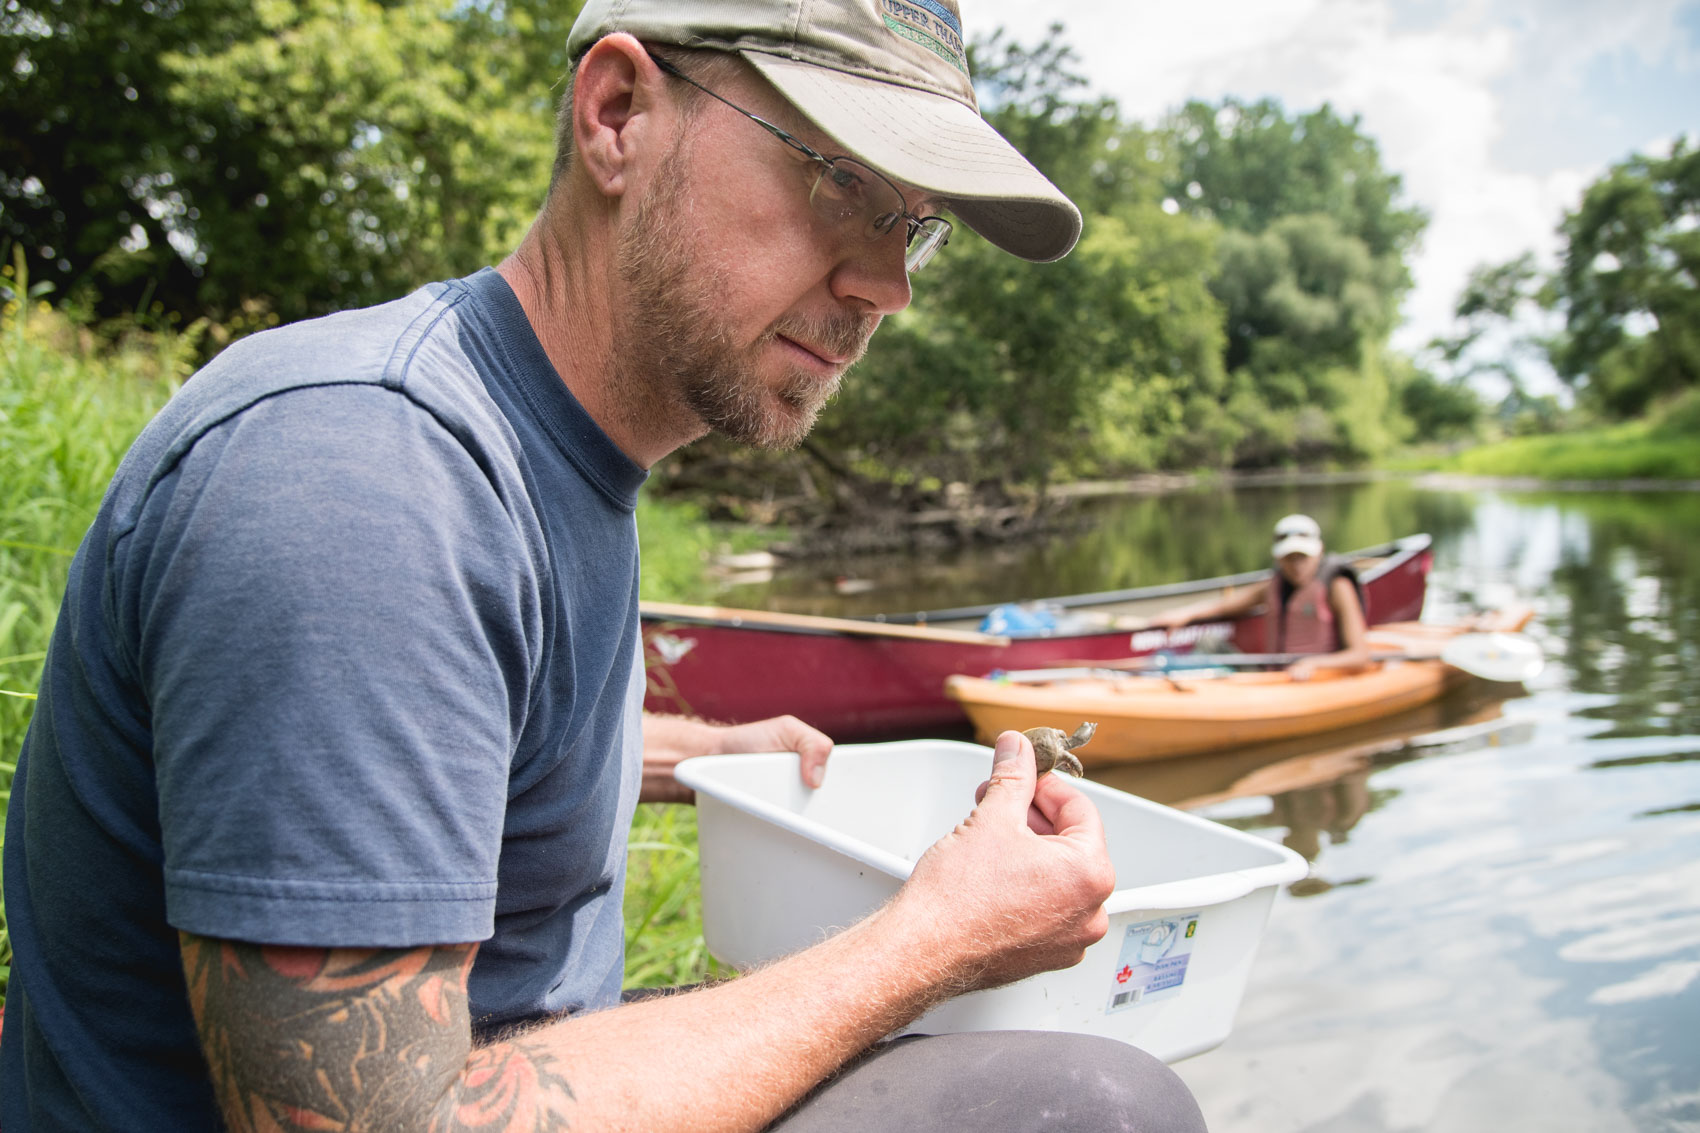 Biologist Scott Gillingwater holds a baby softshell turtle in the Upper Thames River